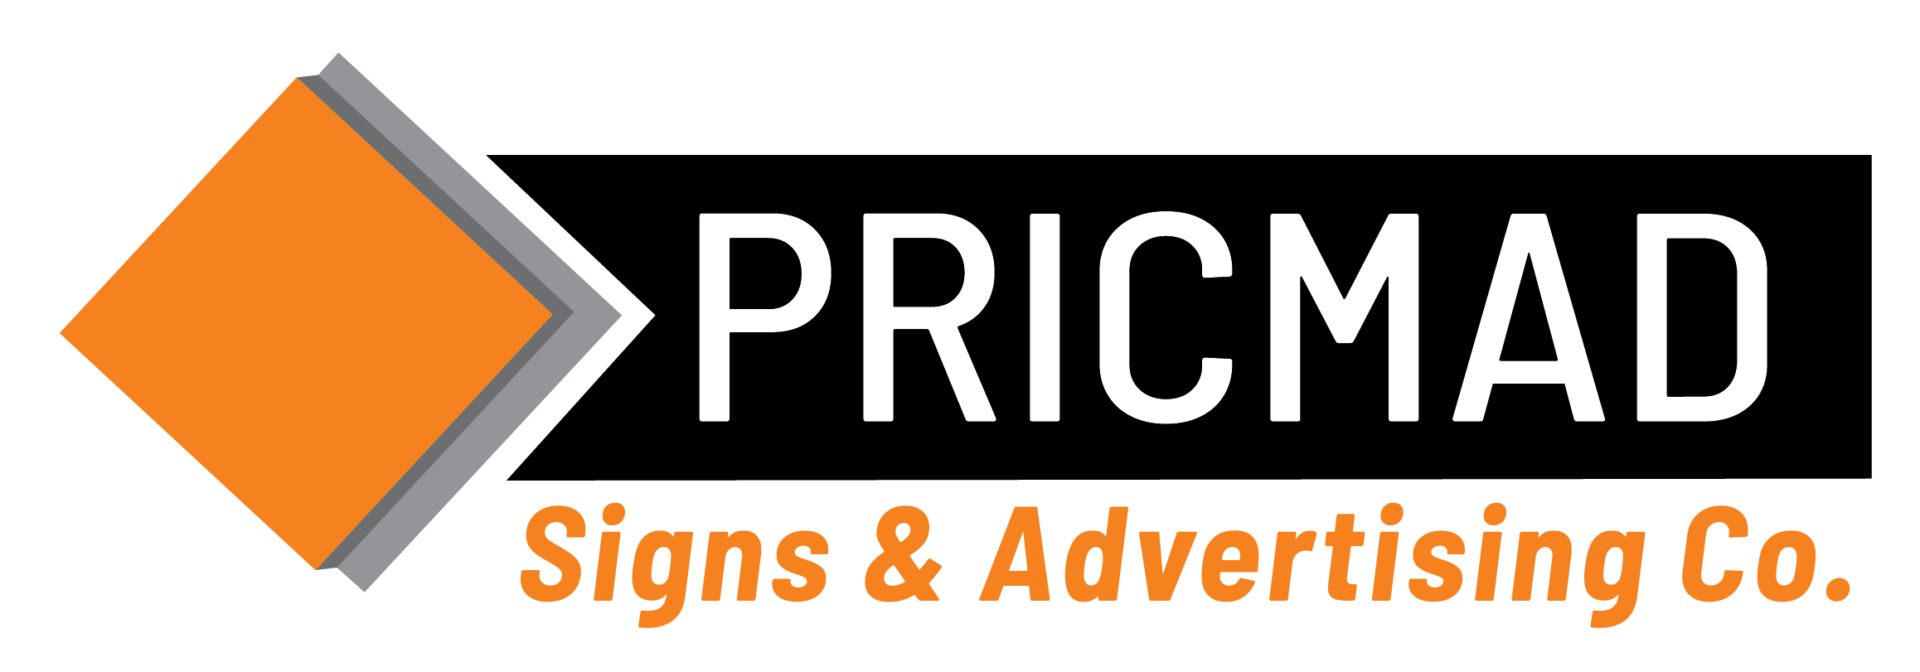 Pricmadsigns